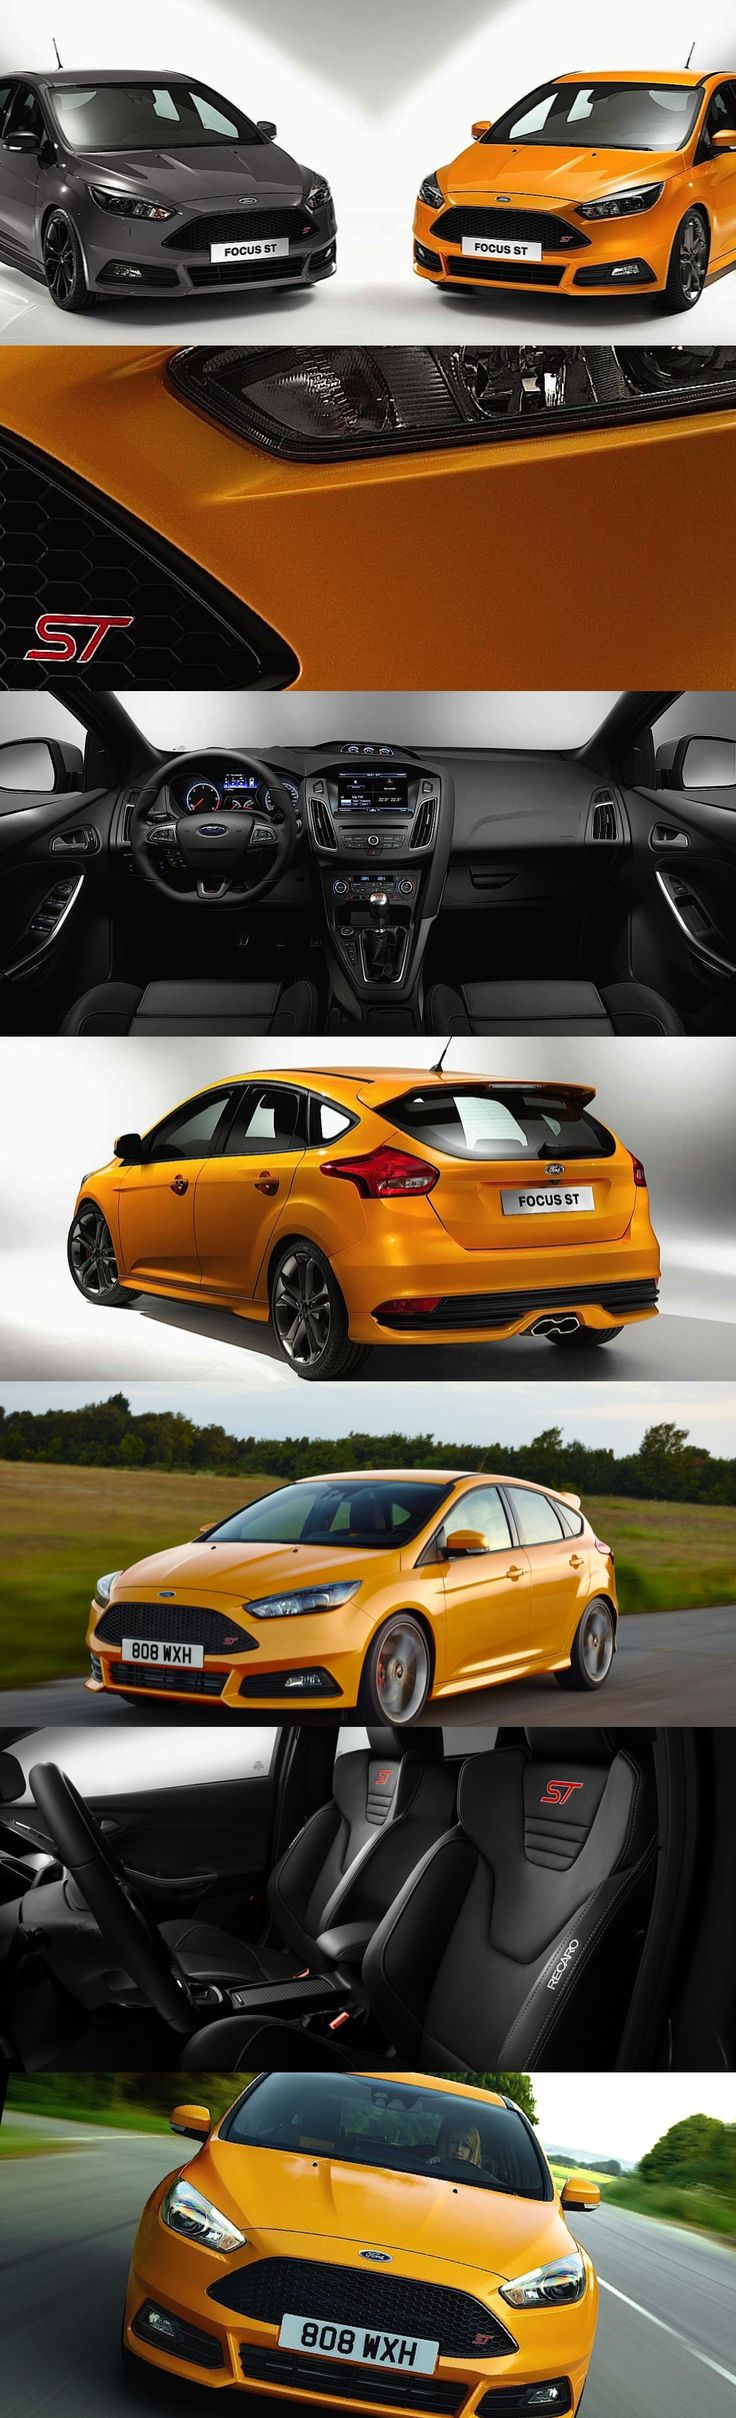 Ford Focus ST Engineering Excitement - After making its first showing at the Goodwood Festival of Speed, the New ford Focus ST is here. Ready to satisfy enthusiastic drivers with an exceptional and rewarding driving experience.   DNA has been advanced with upgrades to the power train, suspension, steering and the onboard electronic control systems. The Ford RS team have taken it all one just step further with this model.  #fordfocus #rs #focusst #newfordfocus #newcars #drive